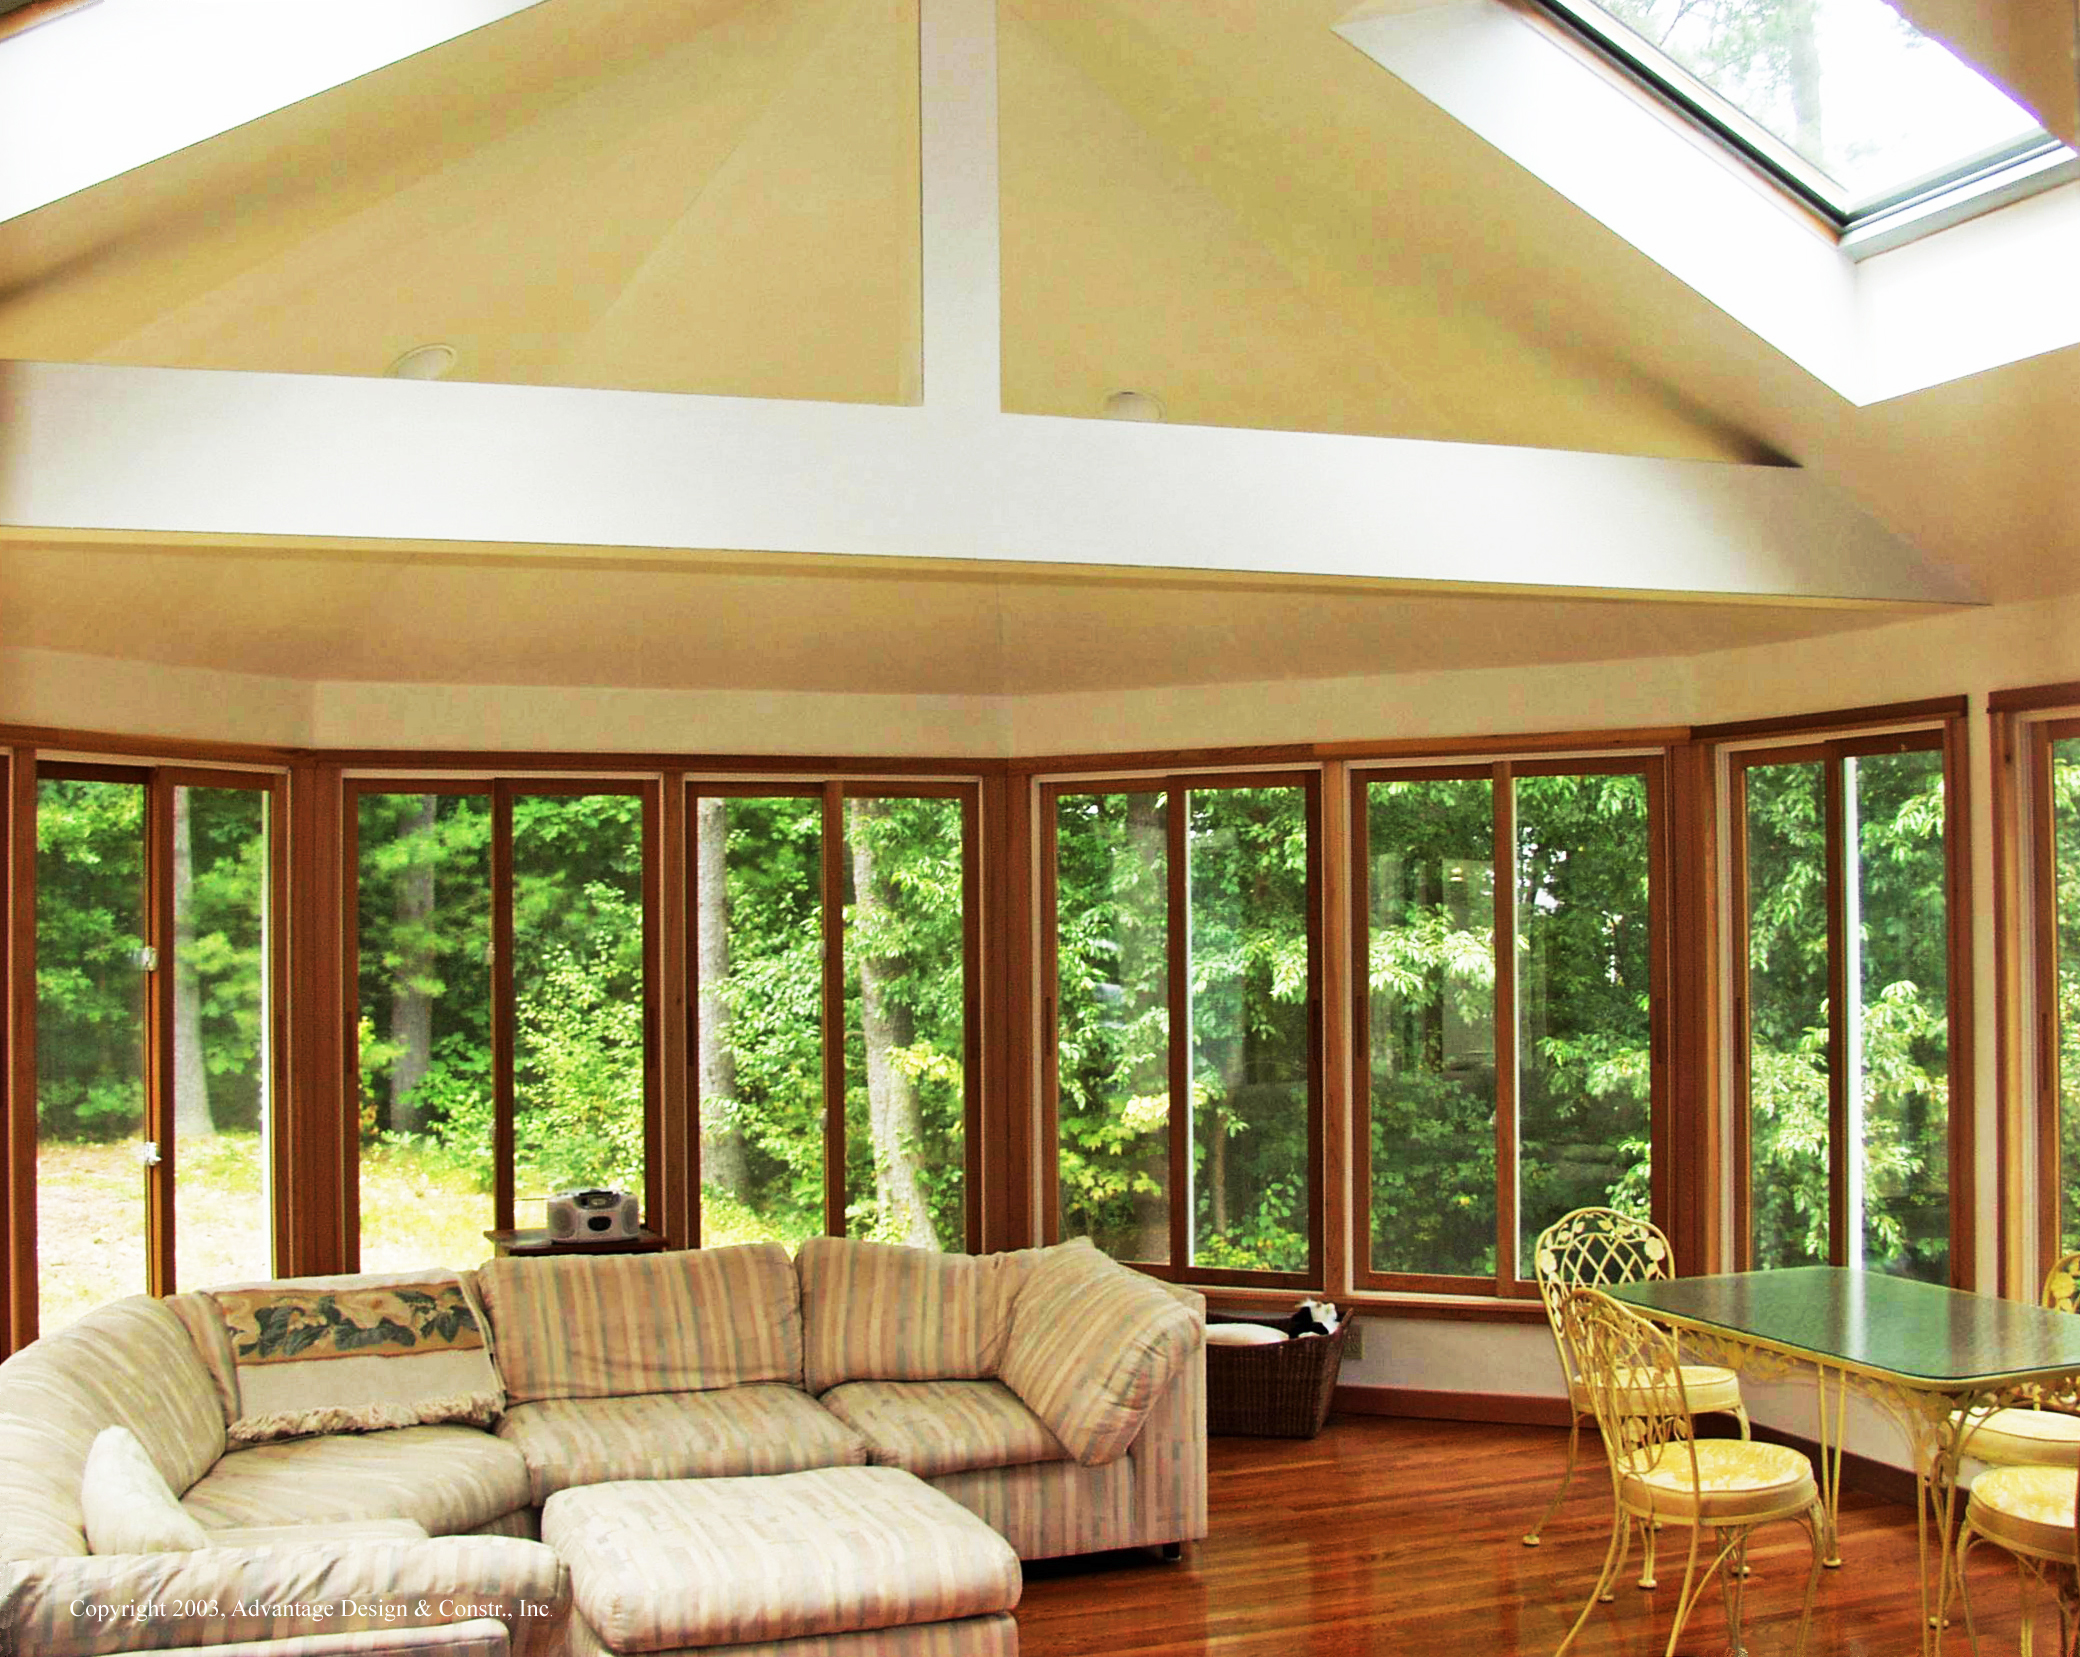 Exceptional Octagonal Sunroom In Boxford, MA